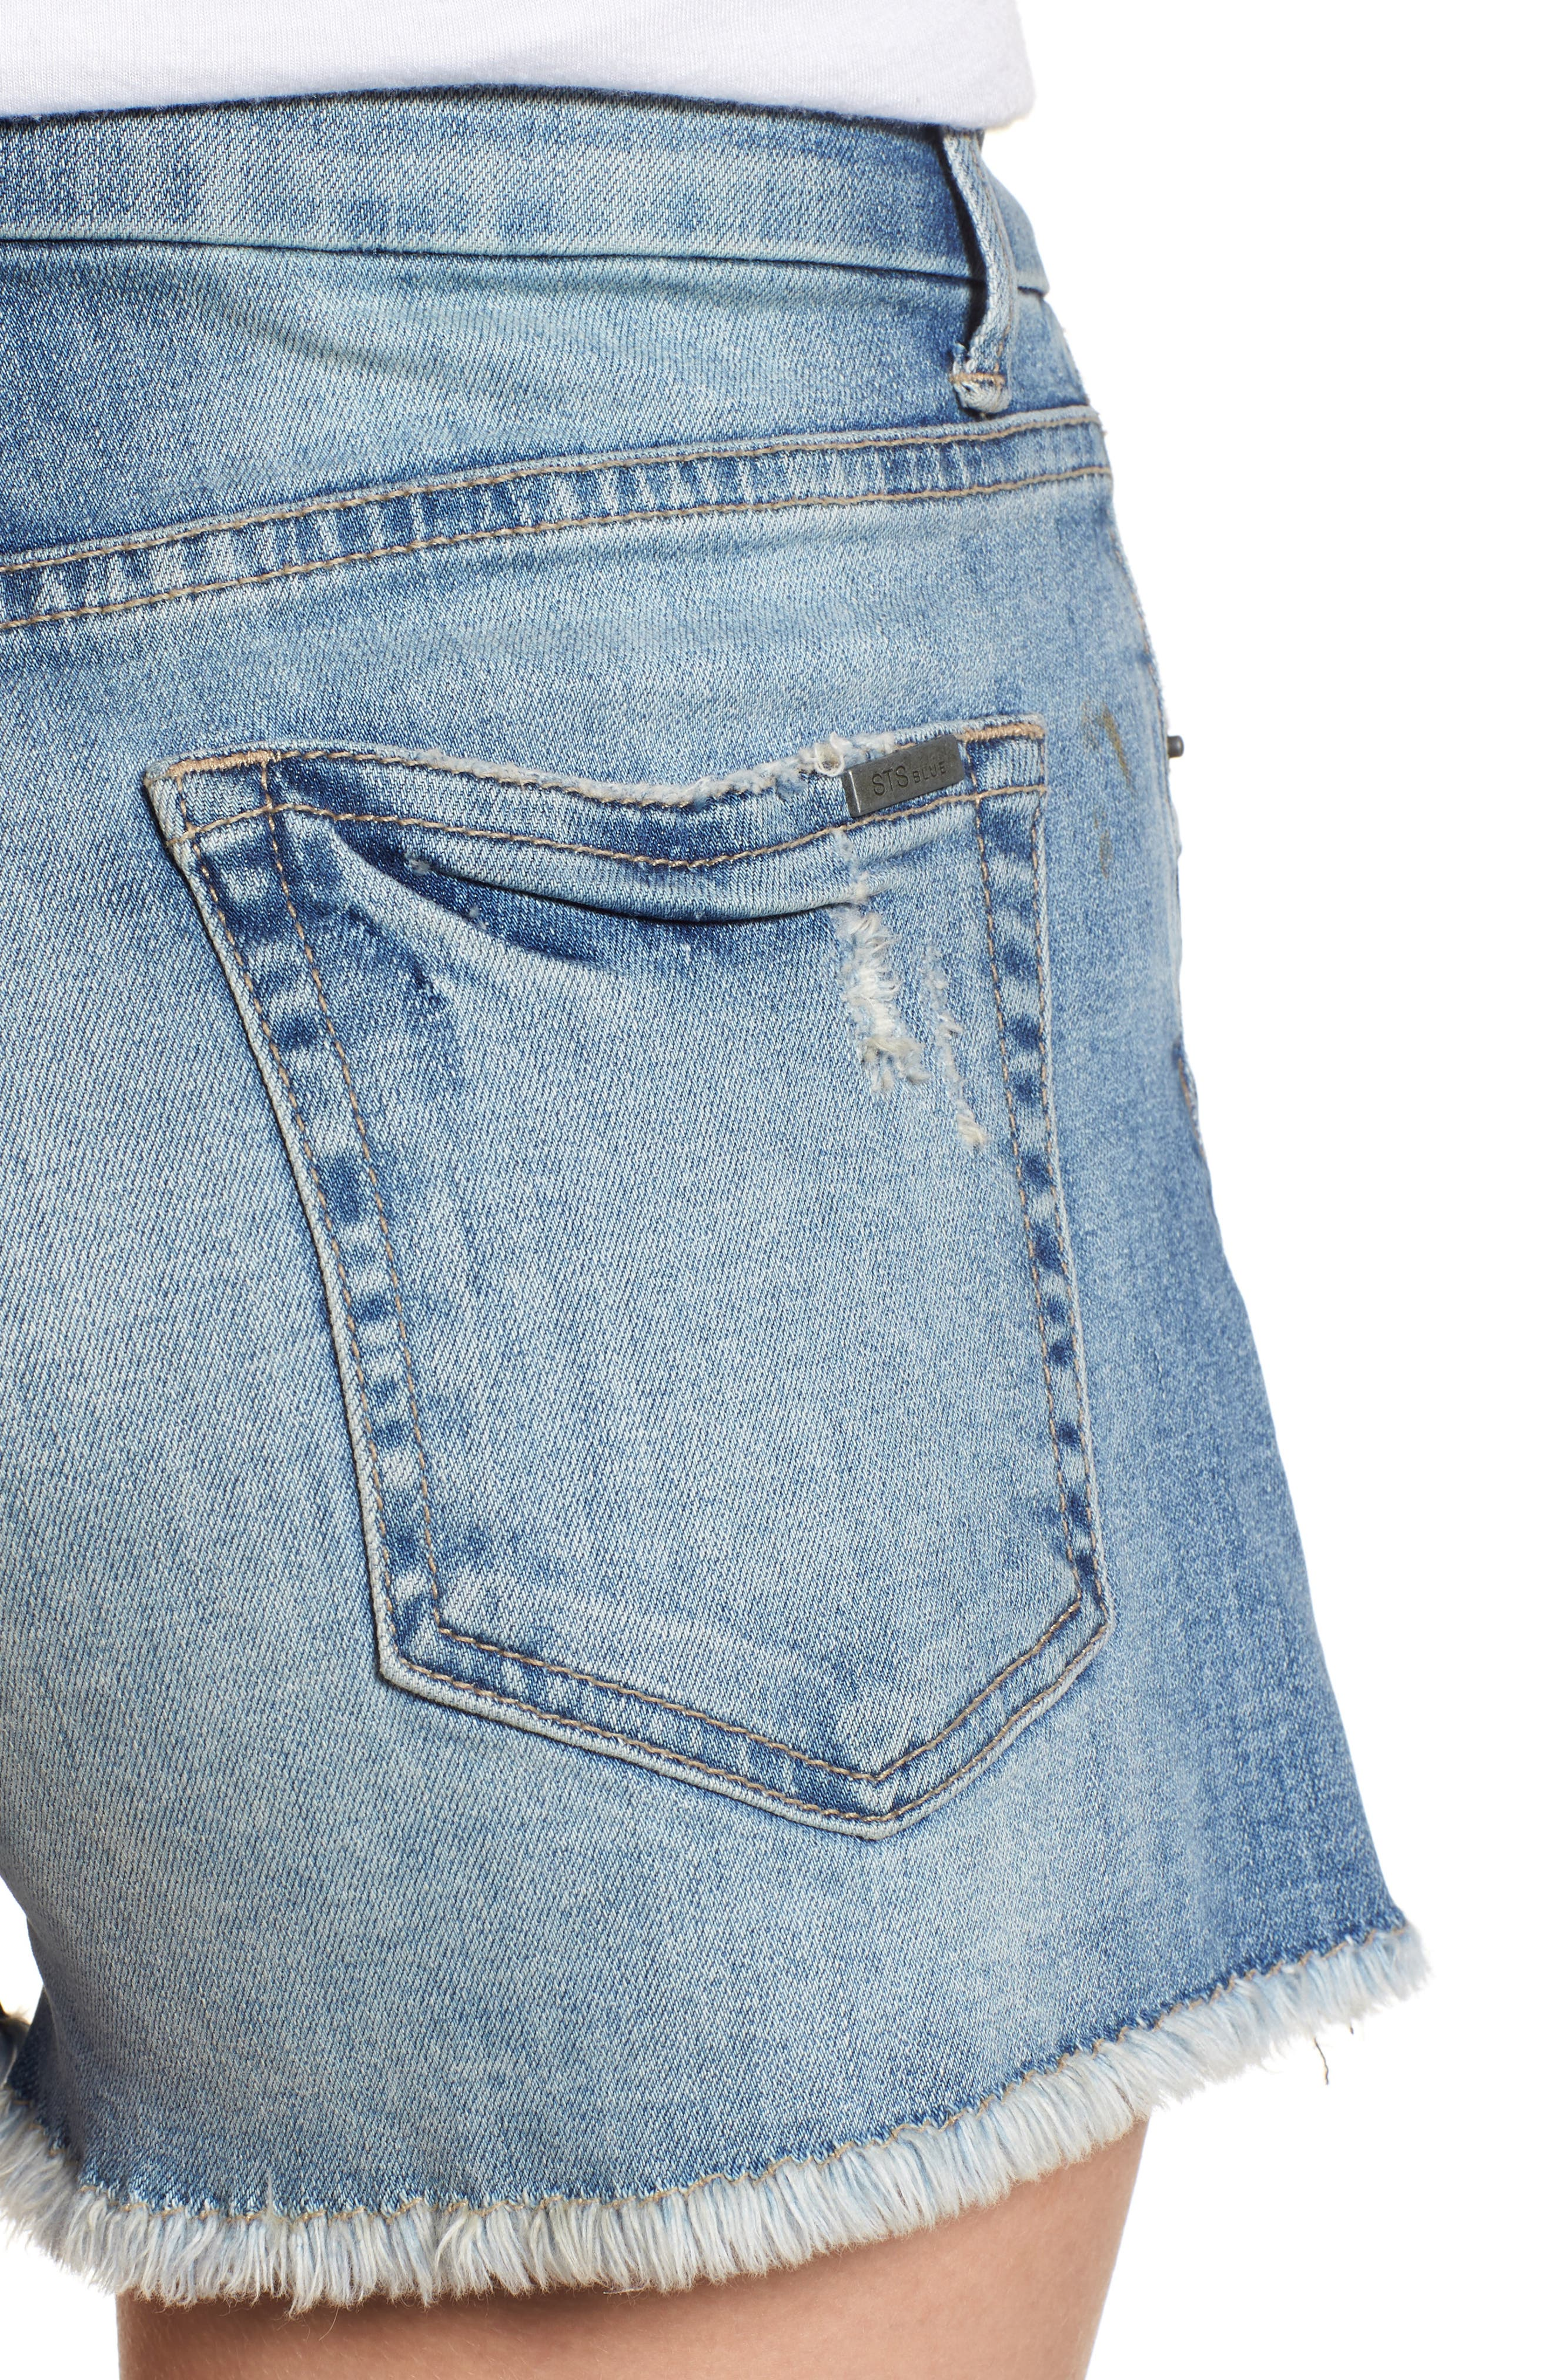 High Waist Boyfriend Shorts,                             Alternate thumbnail 4, color,                             Sundance